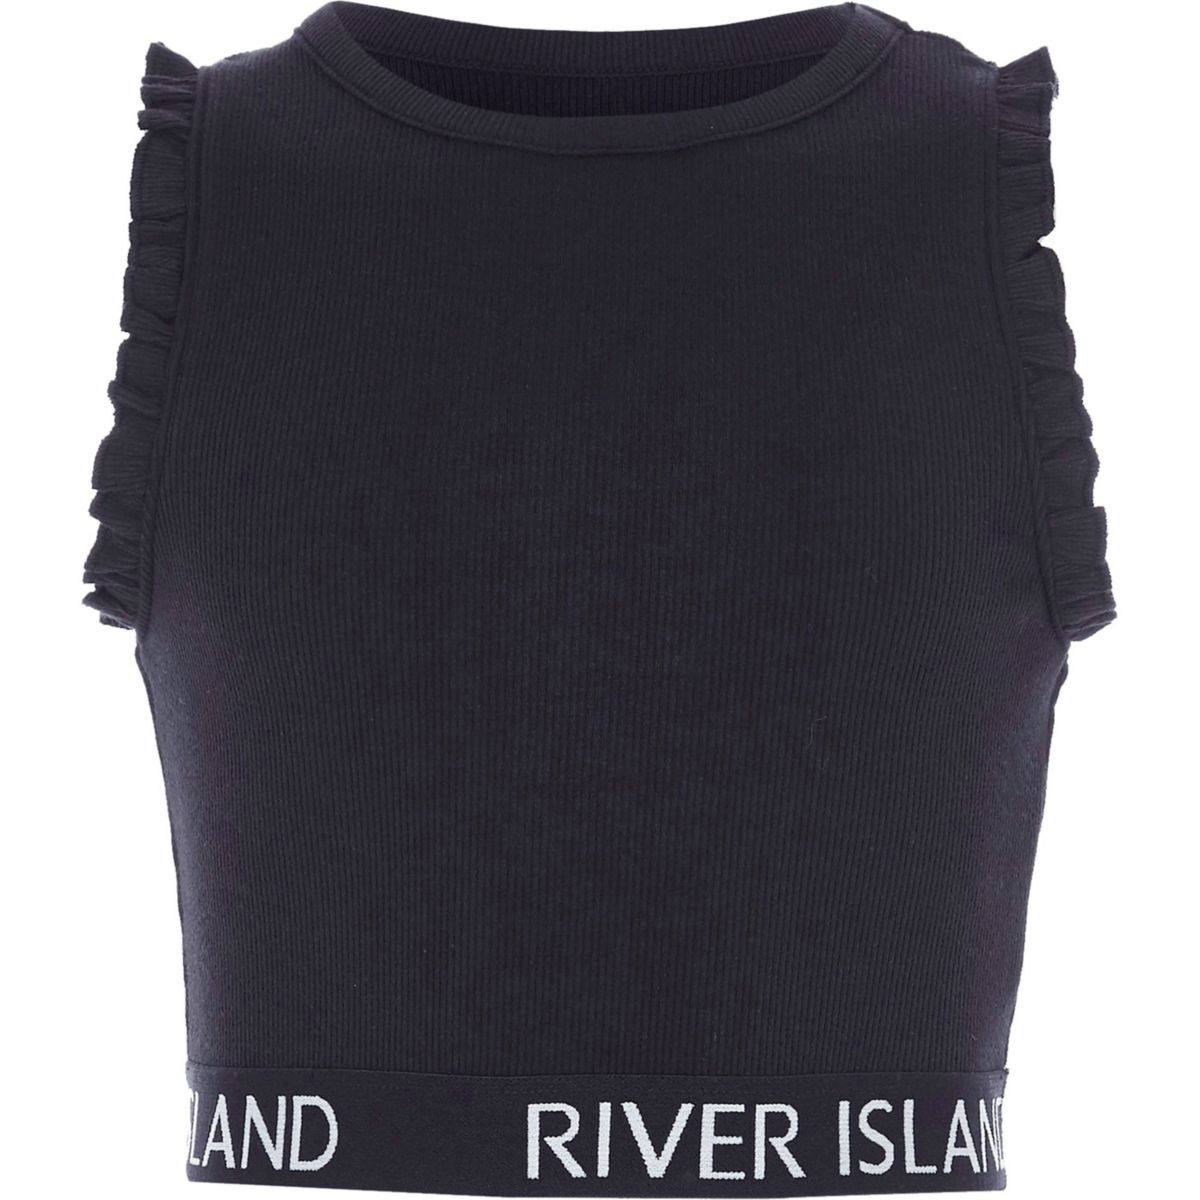 Marineblaues Crop Top mit RI-Logo